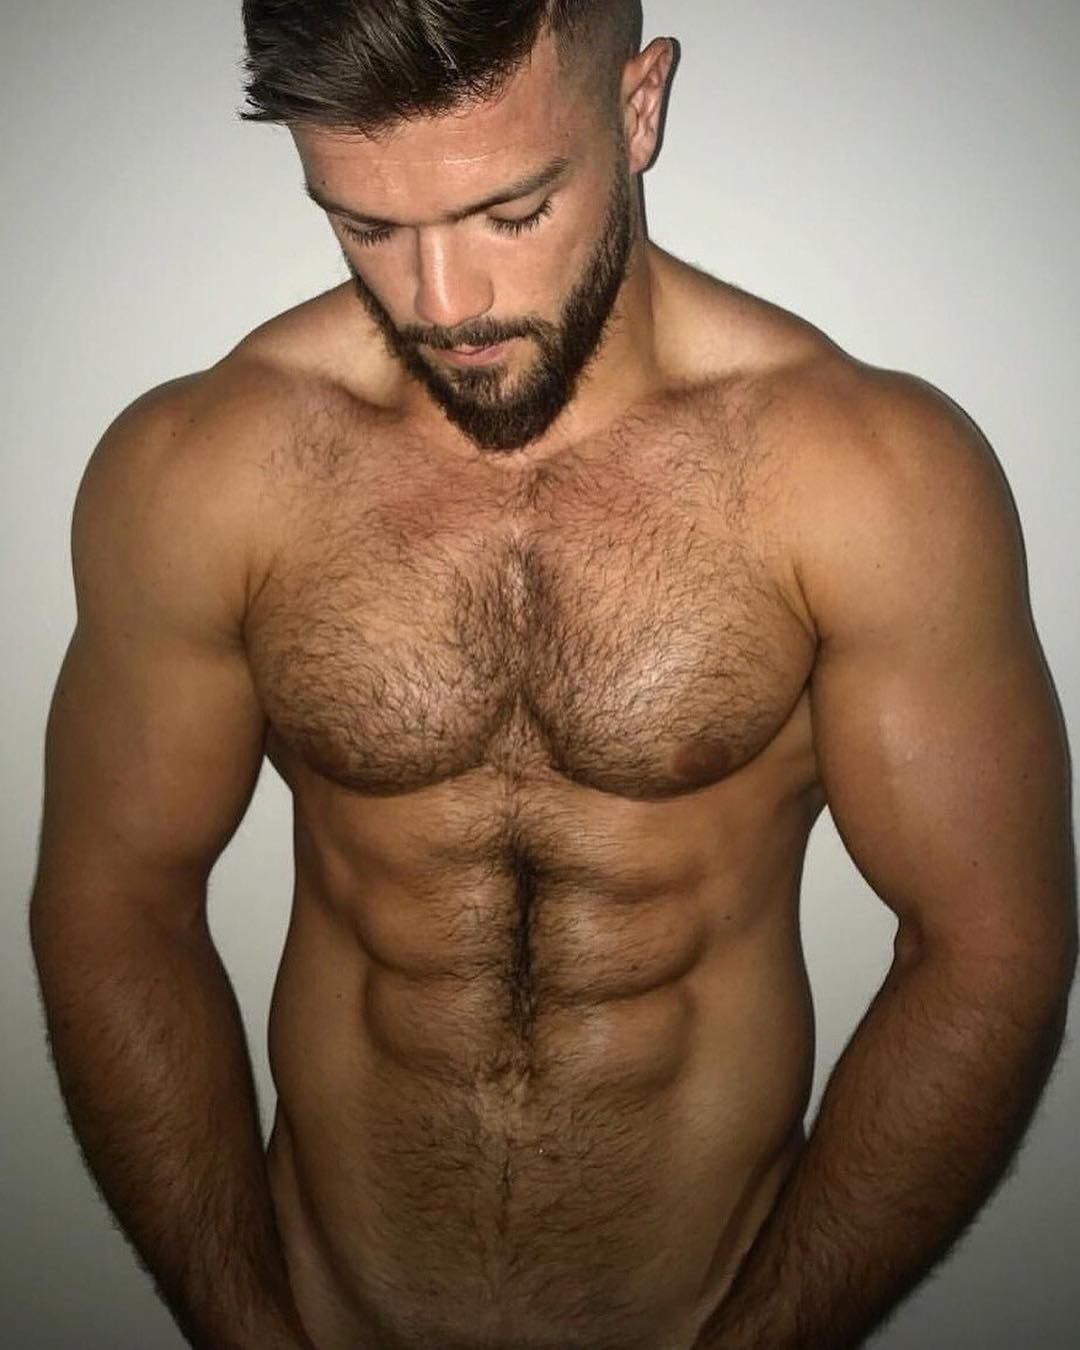 Portrait Of A Muscular Man With Bare Chest, After Workout Looking